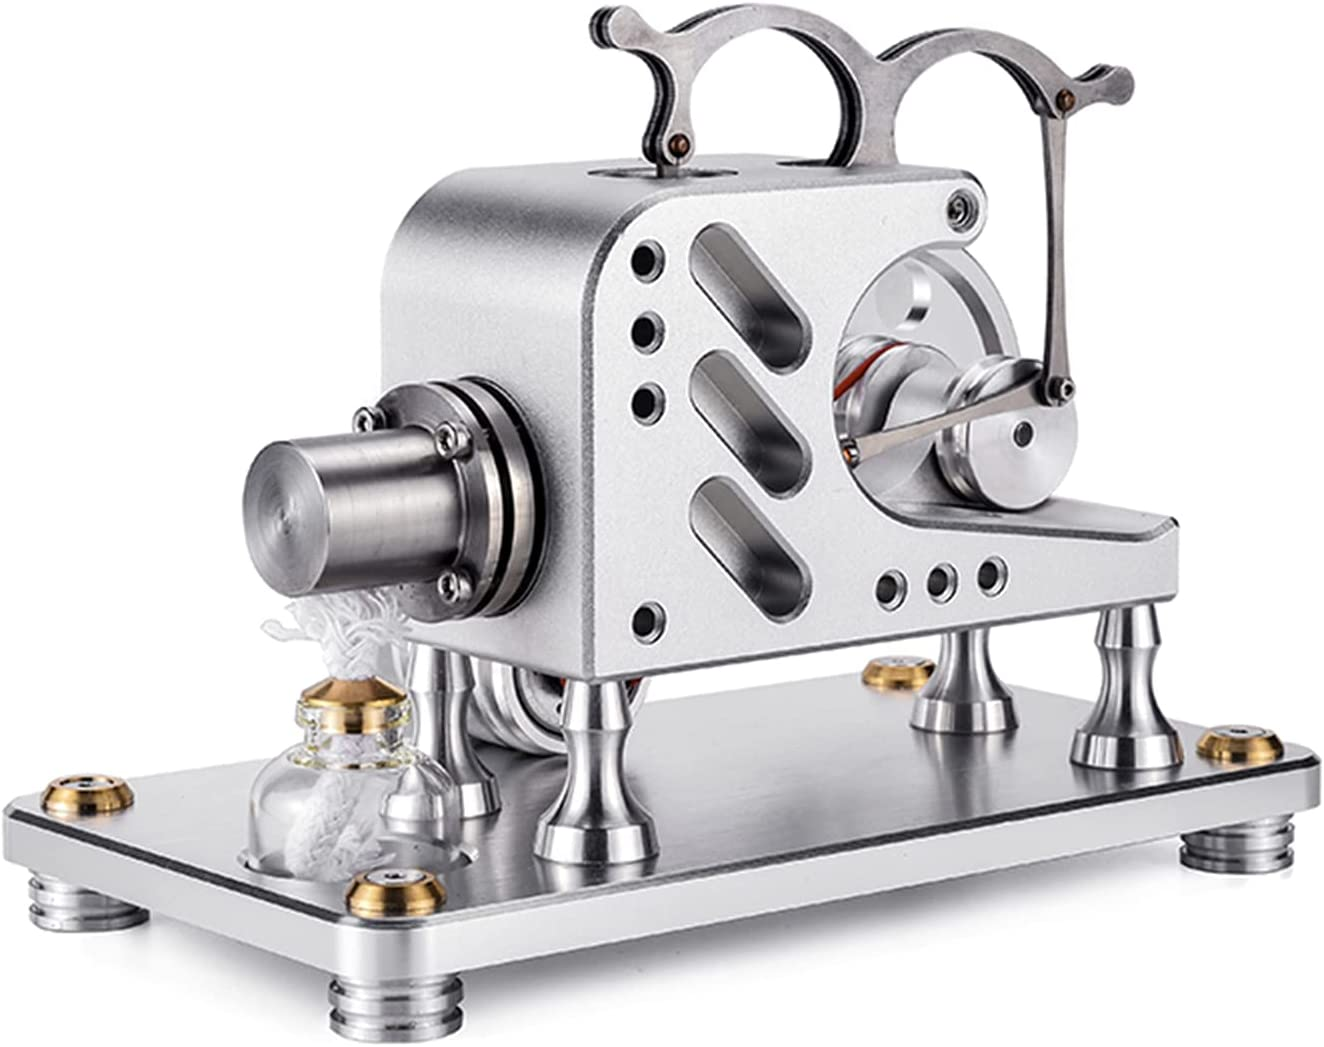 XYW Hot Air Stirling Engine DIY Powerful Surprise price Cylinder Machine 1 Mode Translated